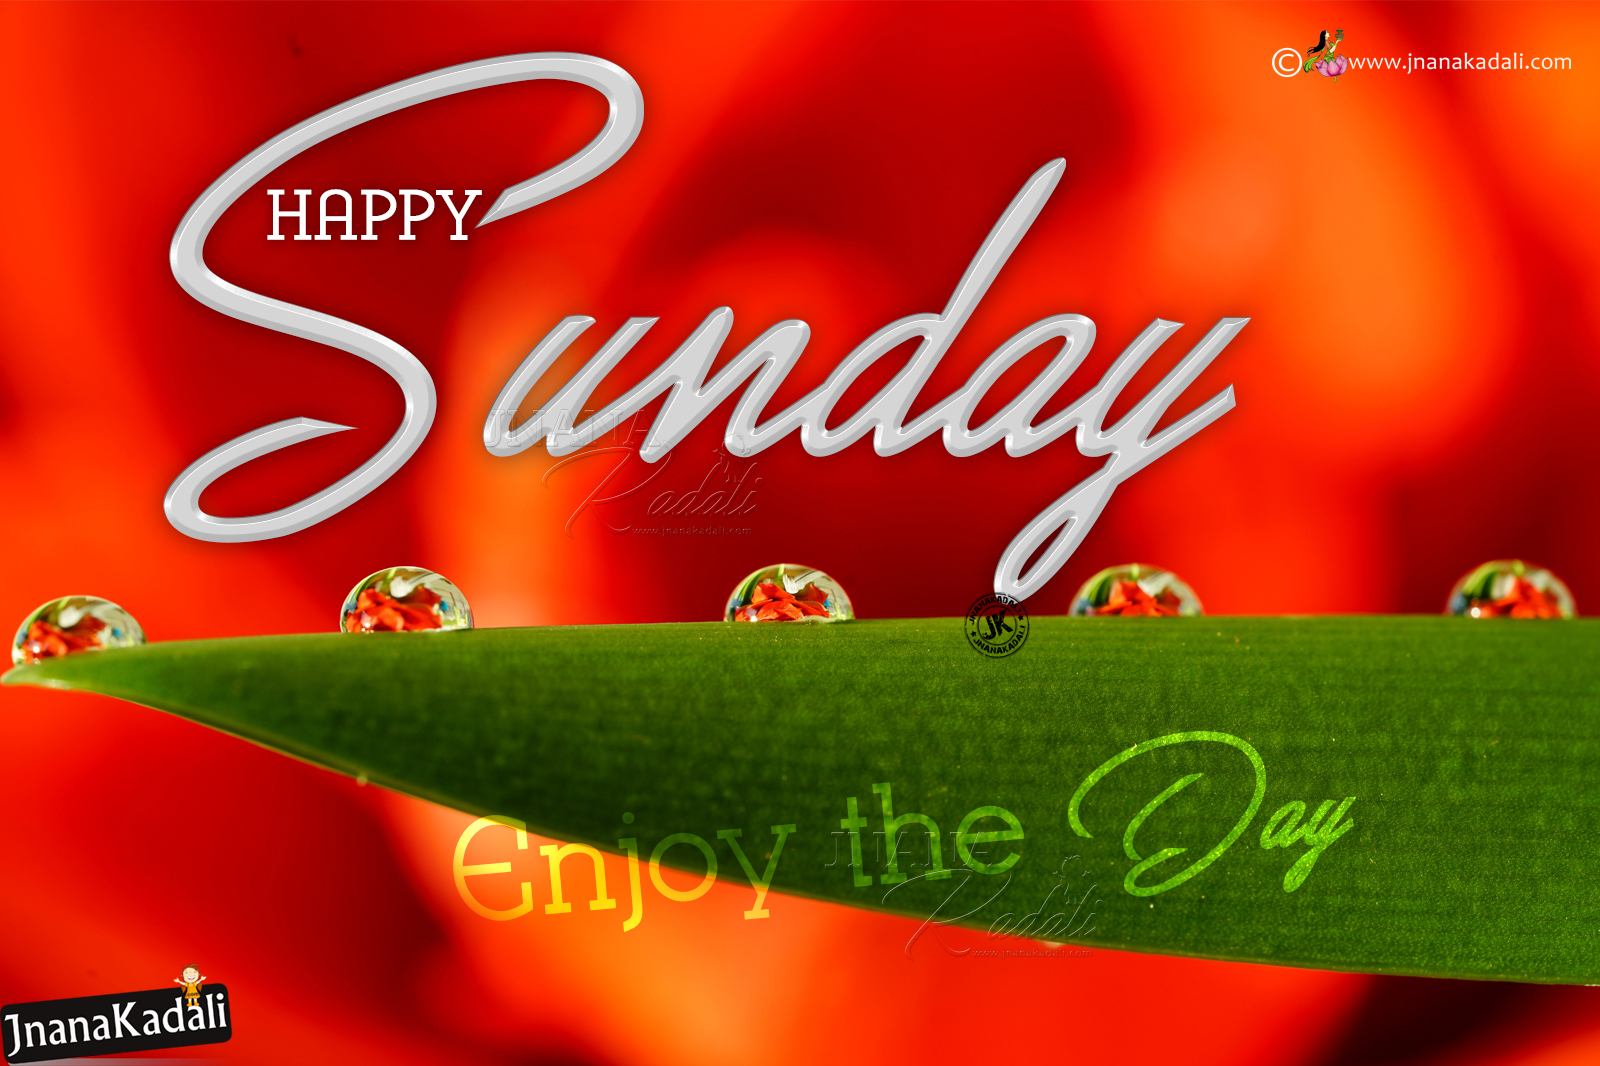 Happy sunday greetings in english enjoy sunday wallpapers happy sunday images pictures in english hapy sunday english greetings best happy sunday wallpapers kristyandbryce Images